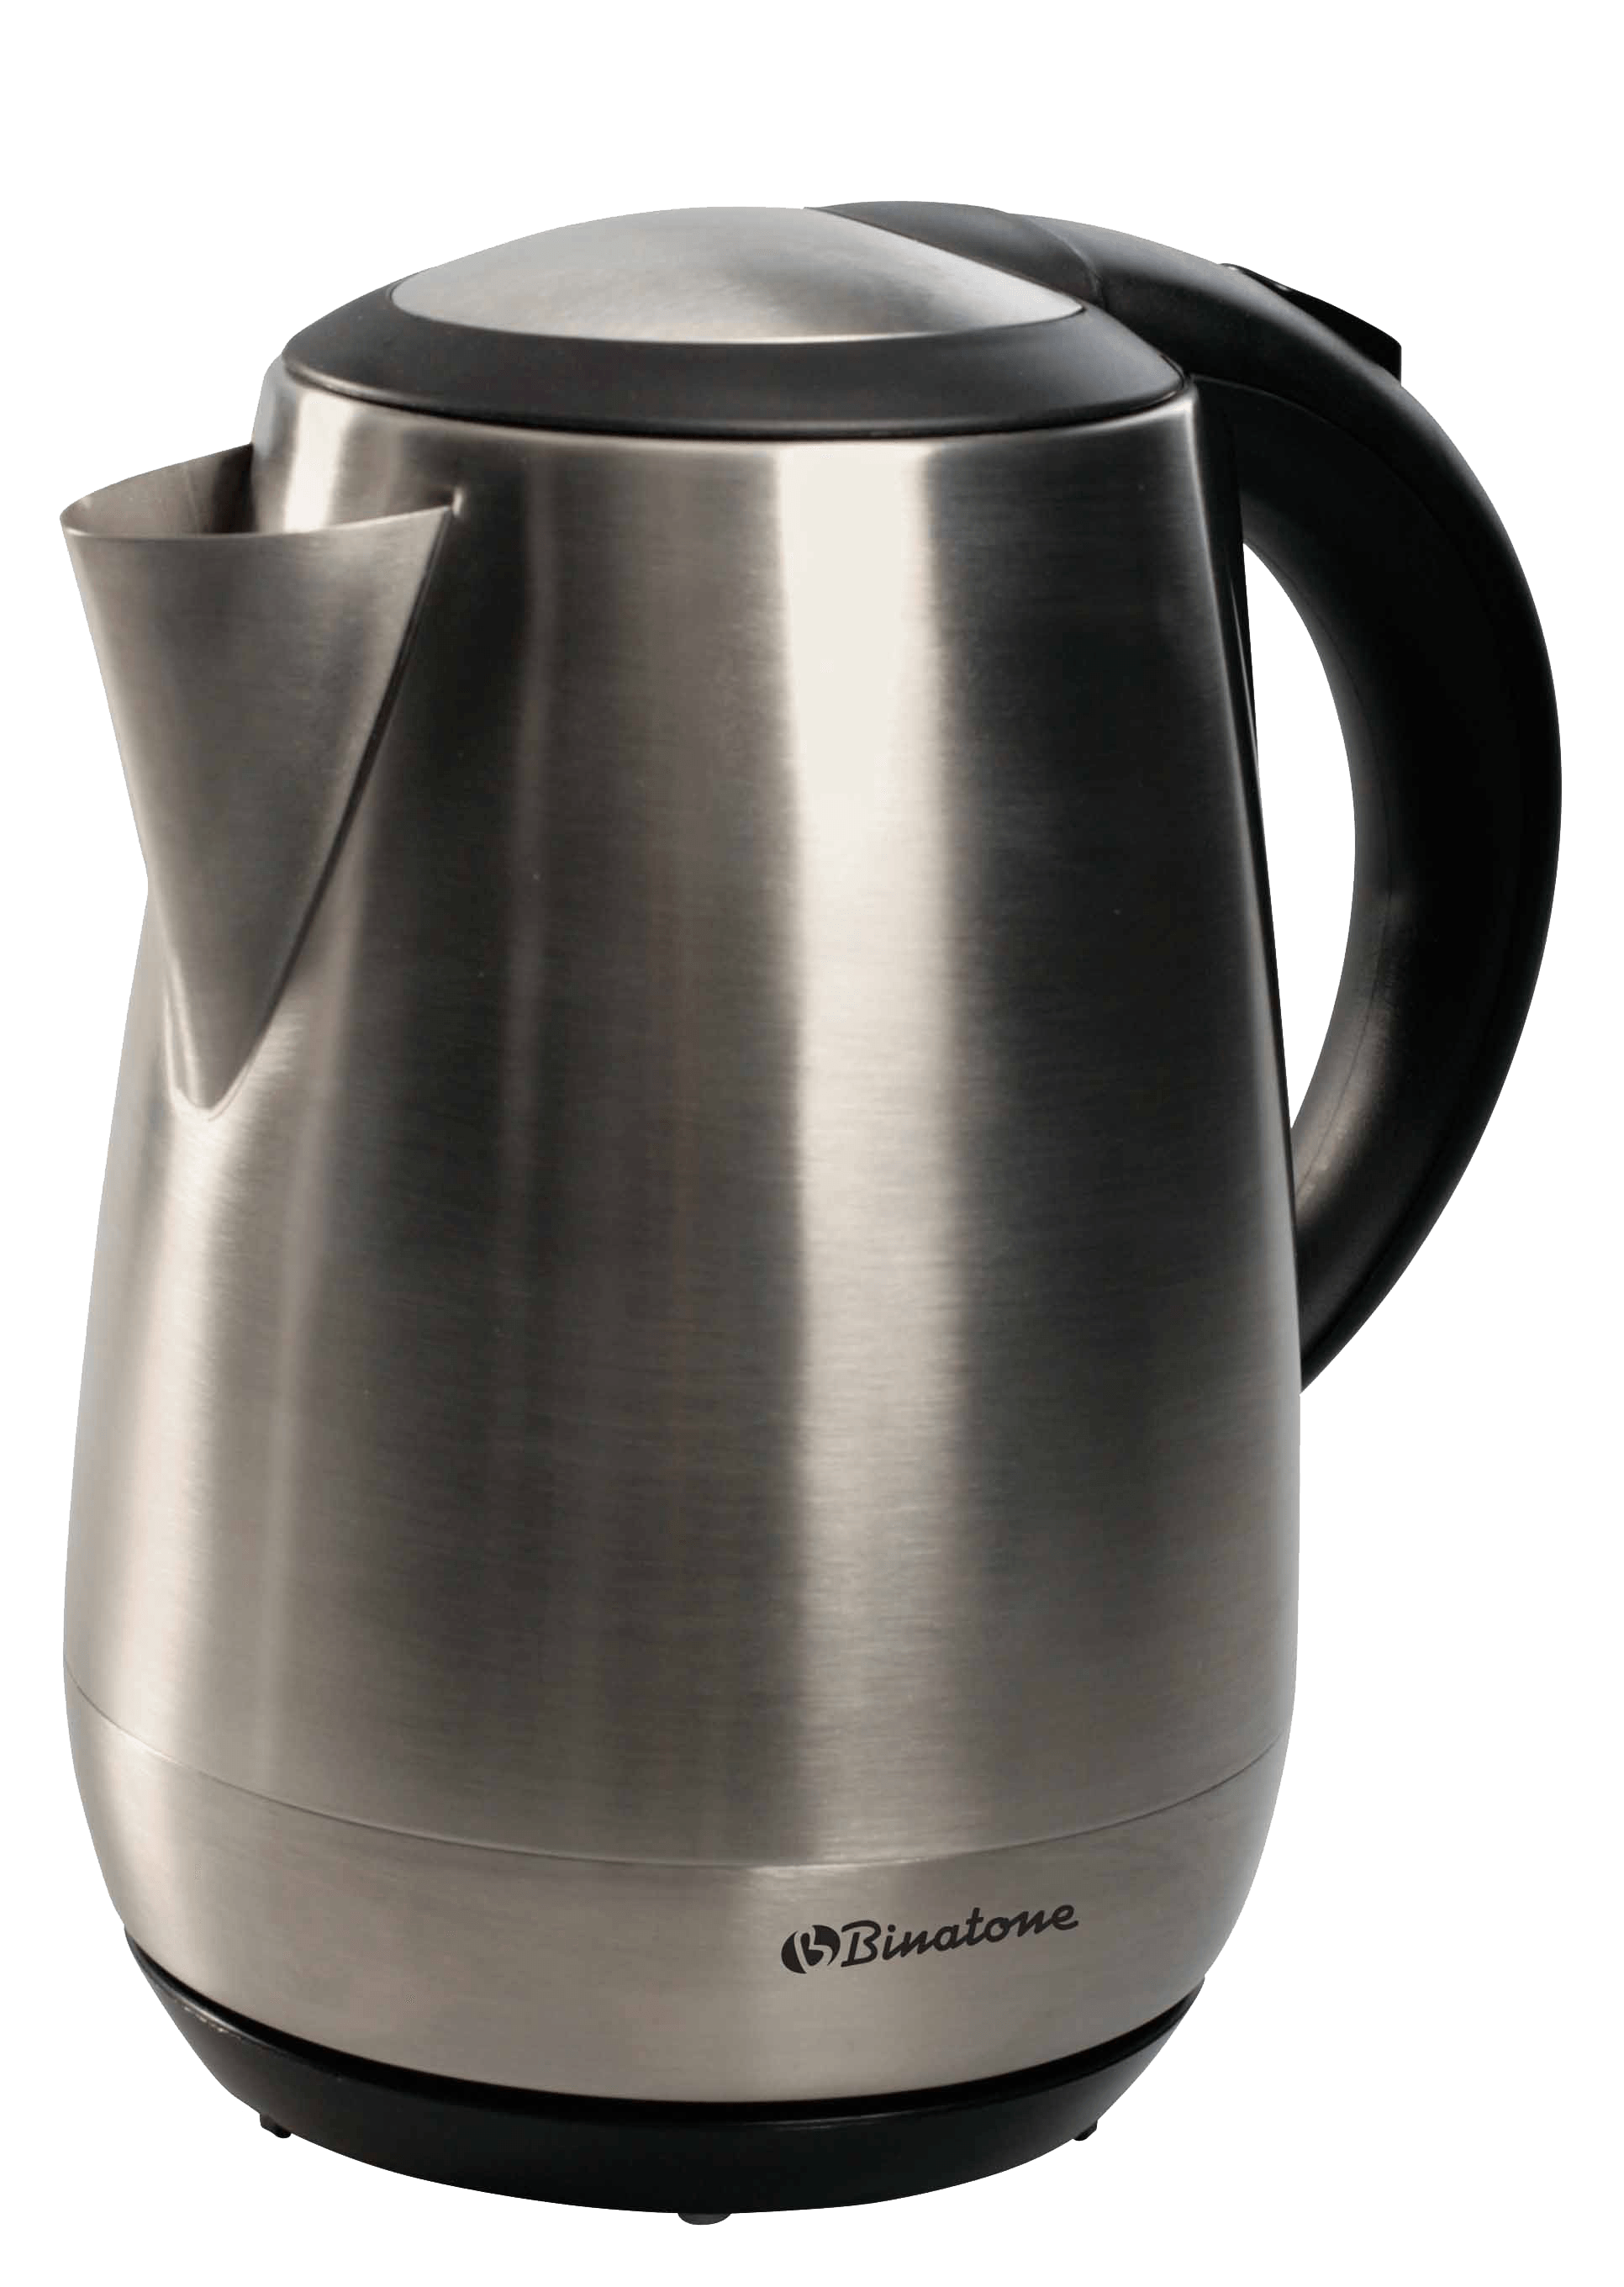 Kettle Png Image PNG Image